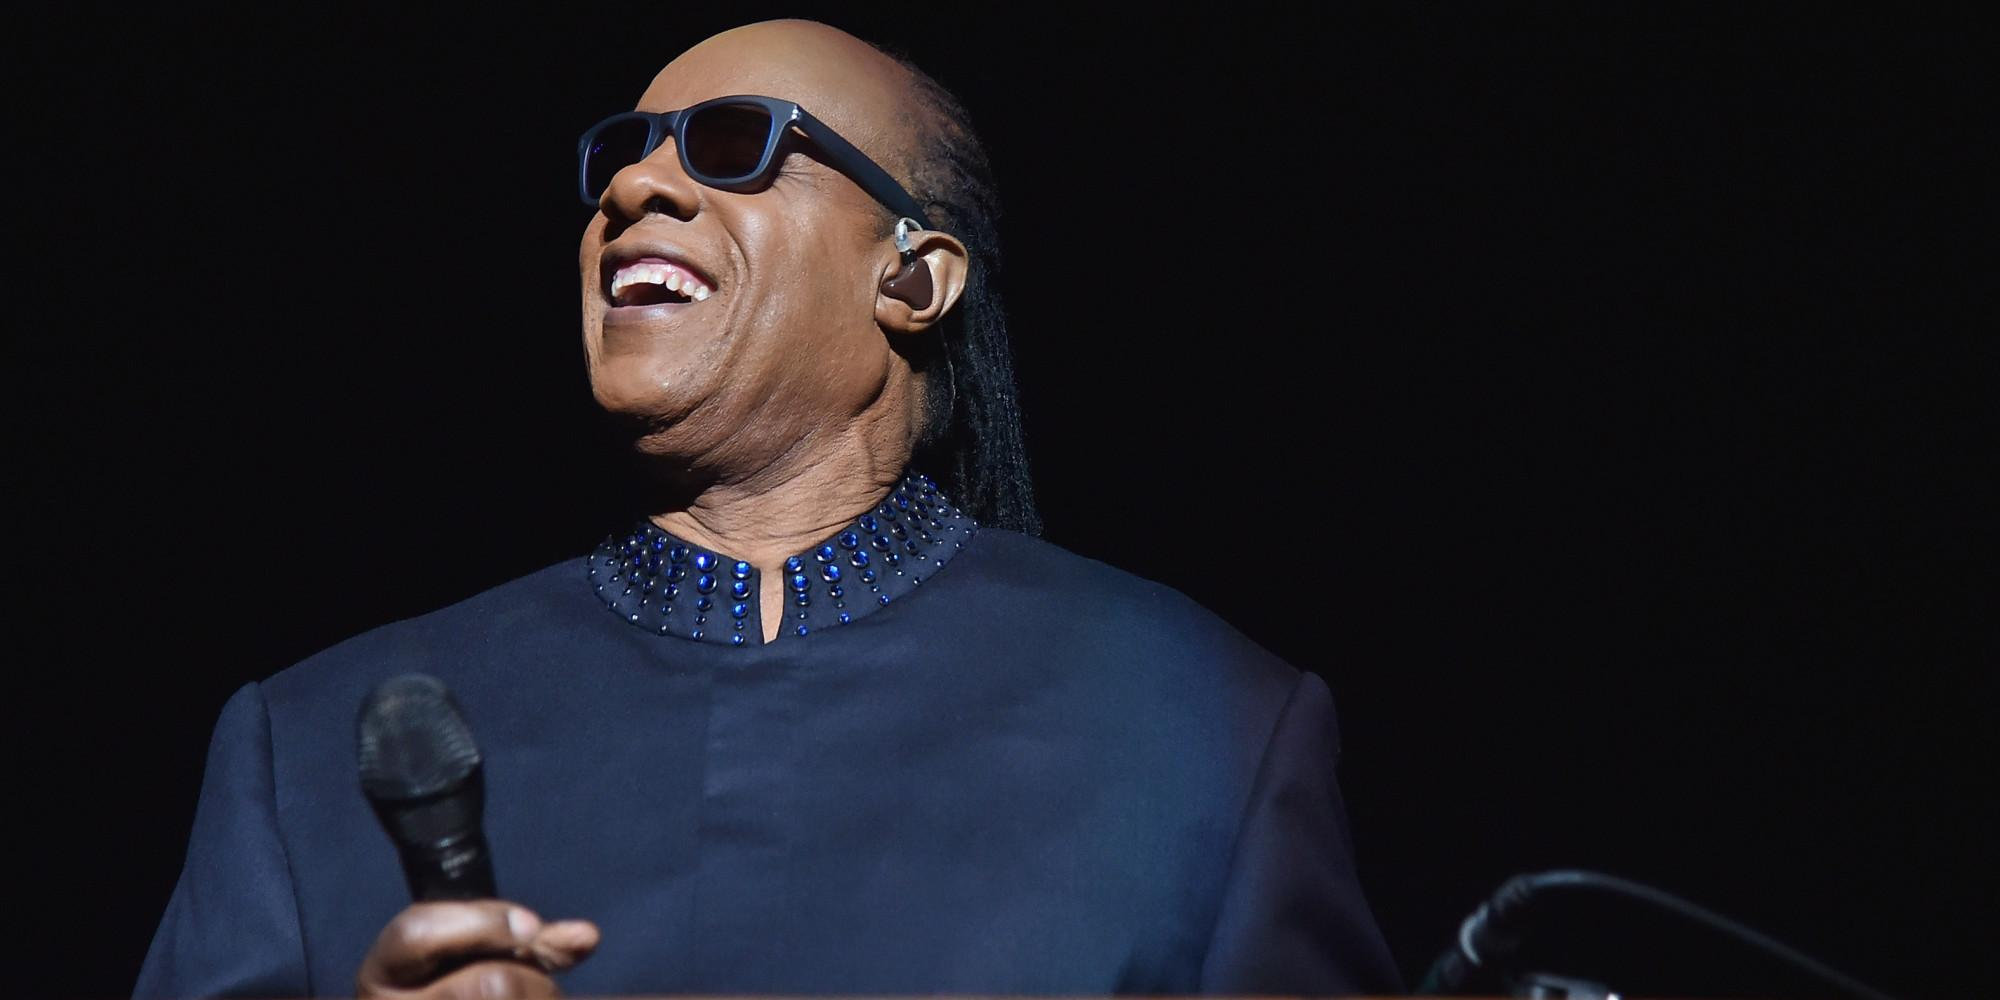 Stevie Wonder played a magnificent show at the Joe Louis Arena on Nov. 21, bringing the crowd together with the love of music.